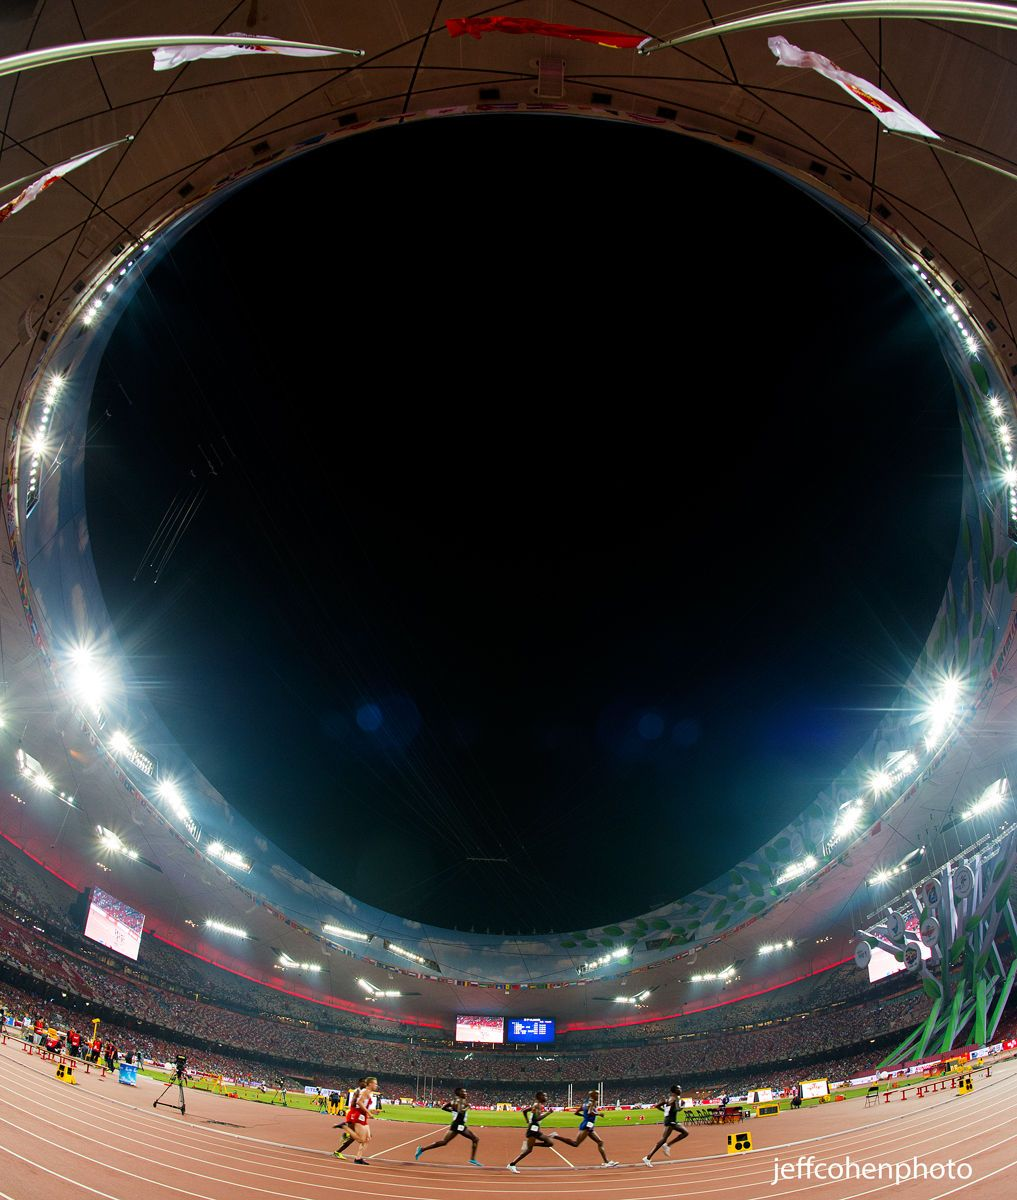 1beijing2015_day1_10k_fisheye_jeff_cohen_photo_2933_web.jpg